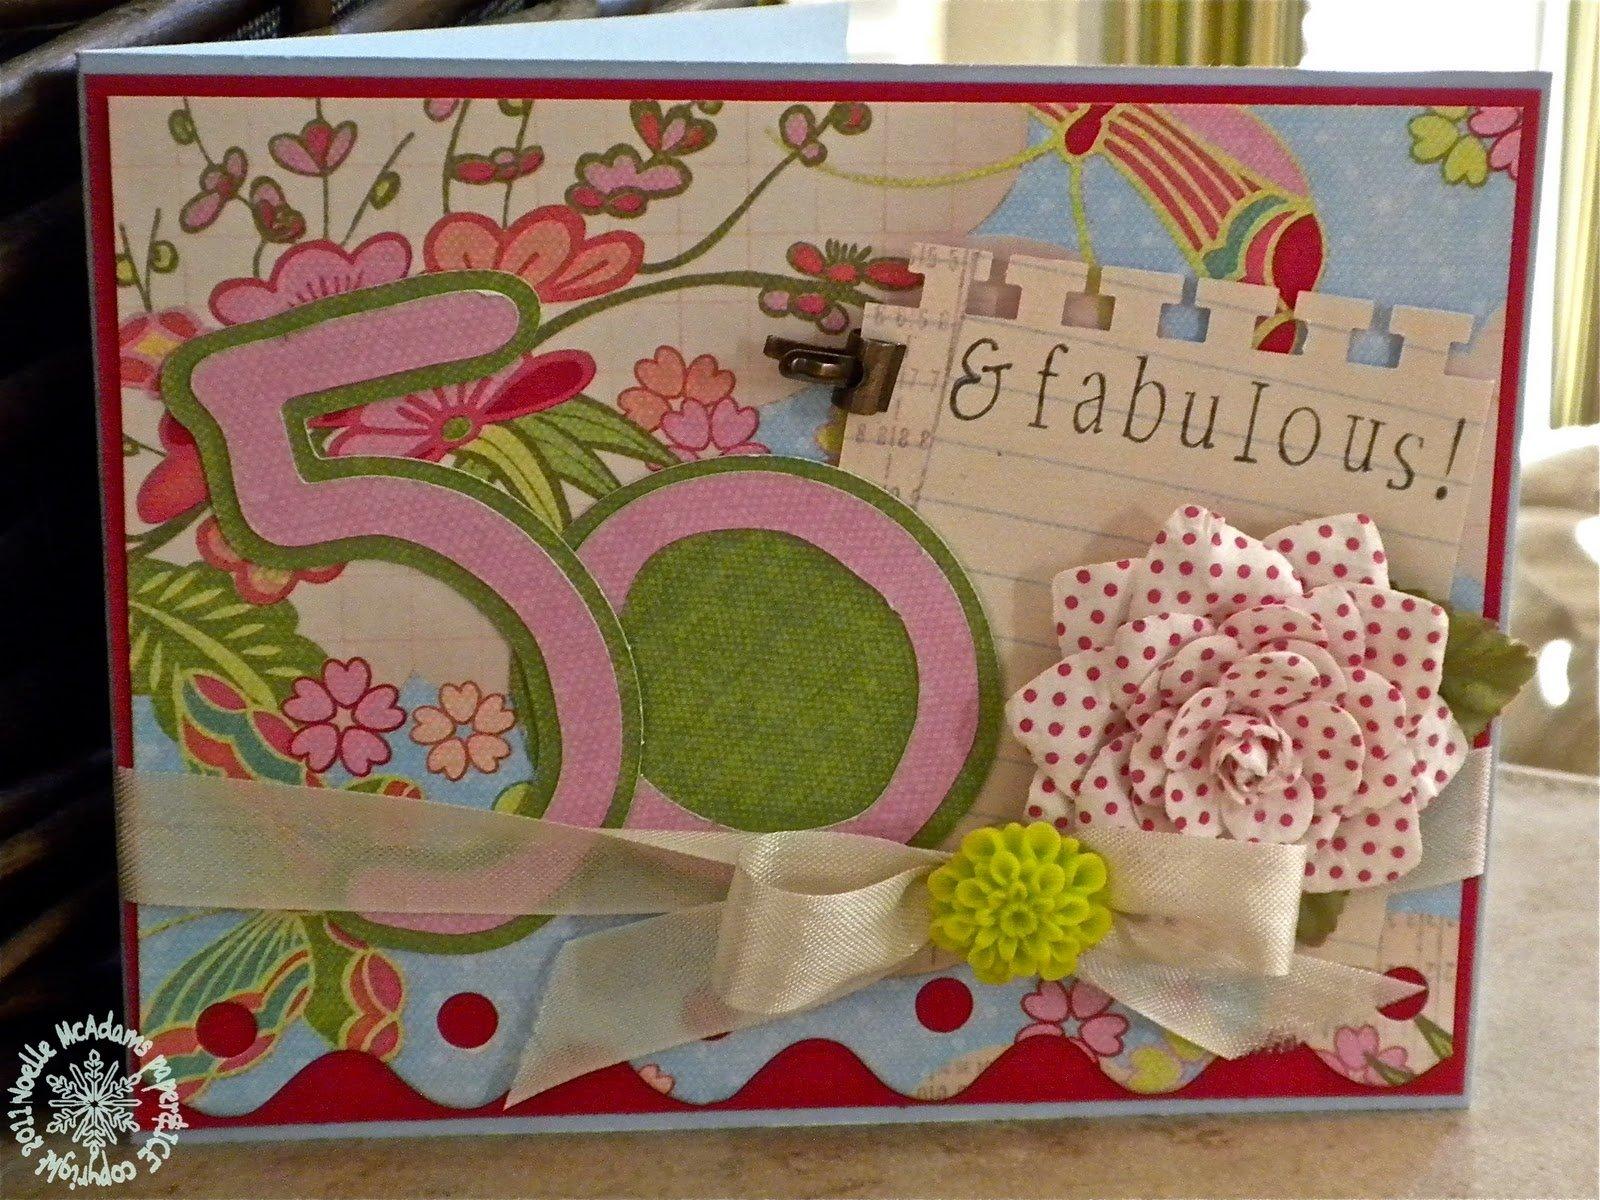 10 Famous 50Th Birthday Ideas For Mom 40th birthday ideas 50th birthday gift ideas for my mom 1 2020